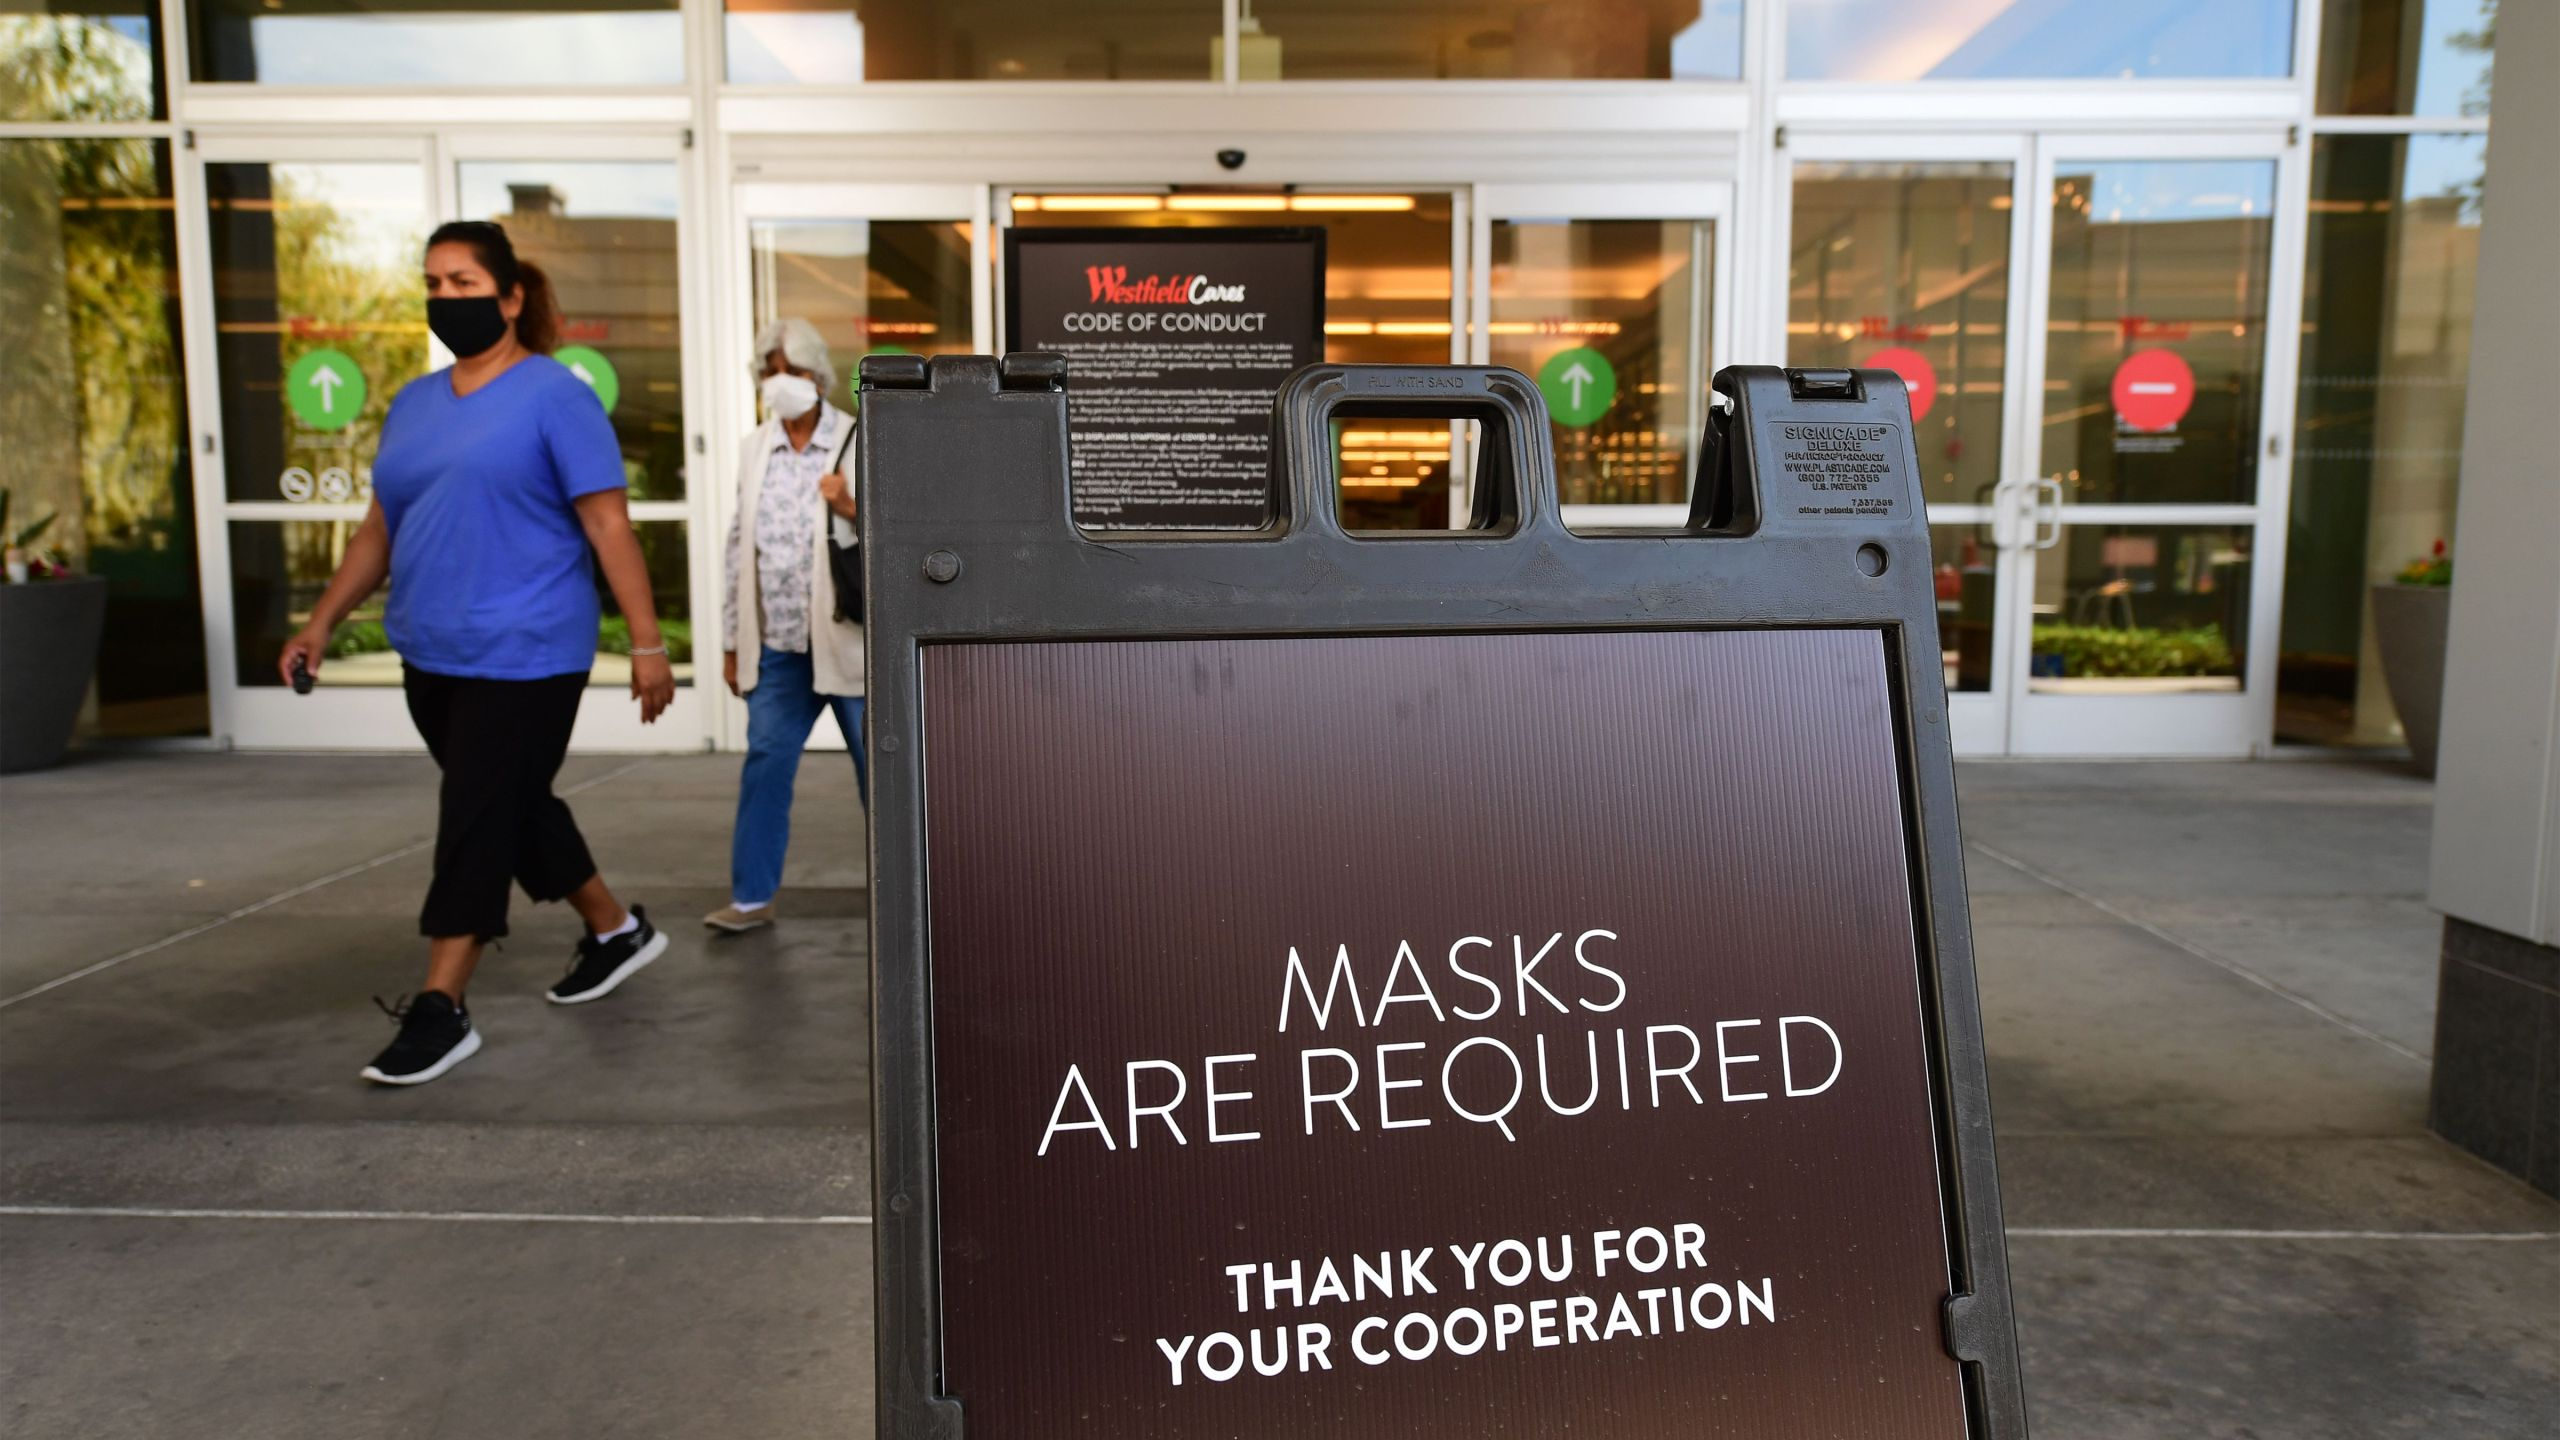 Women wearing face masks exit a shopping mall where a sign is posted at an entrance reminding people of the mask requirement at Westfield Santa Anita mall in Arcadia on June 12, 2020. (FREDERIC J. BROWN/AFP via Getty Images)